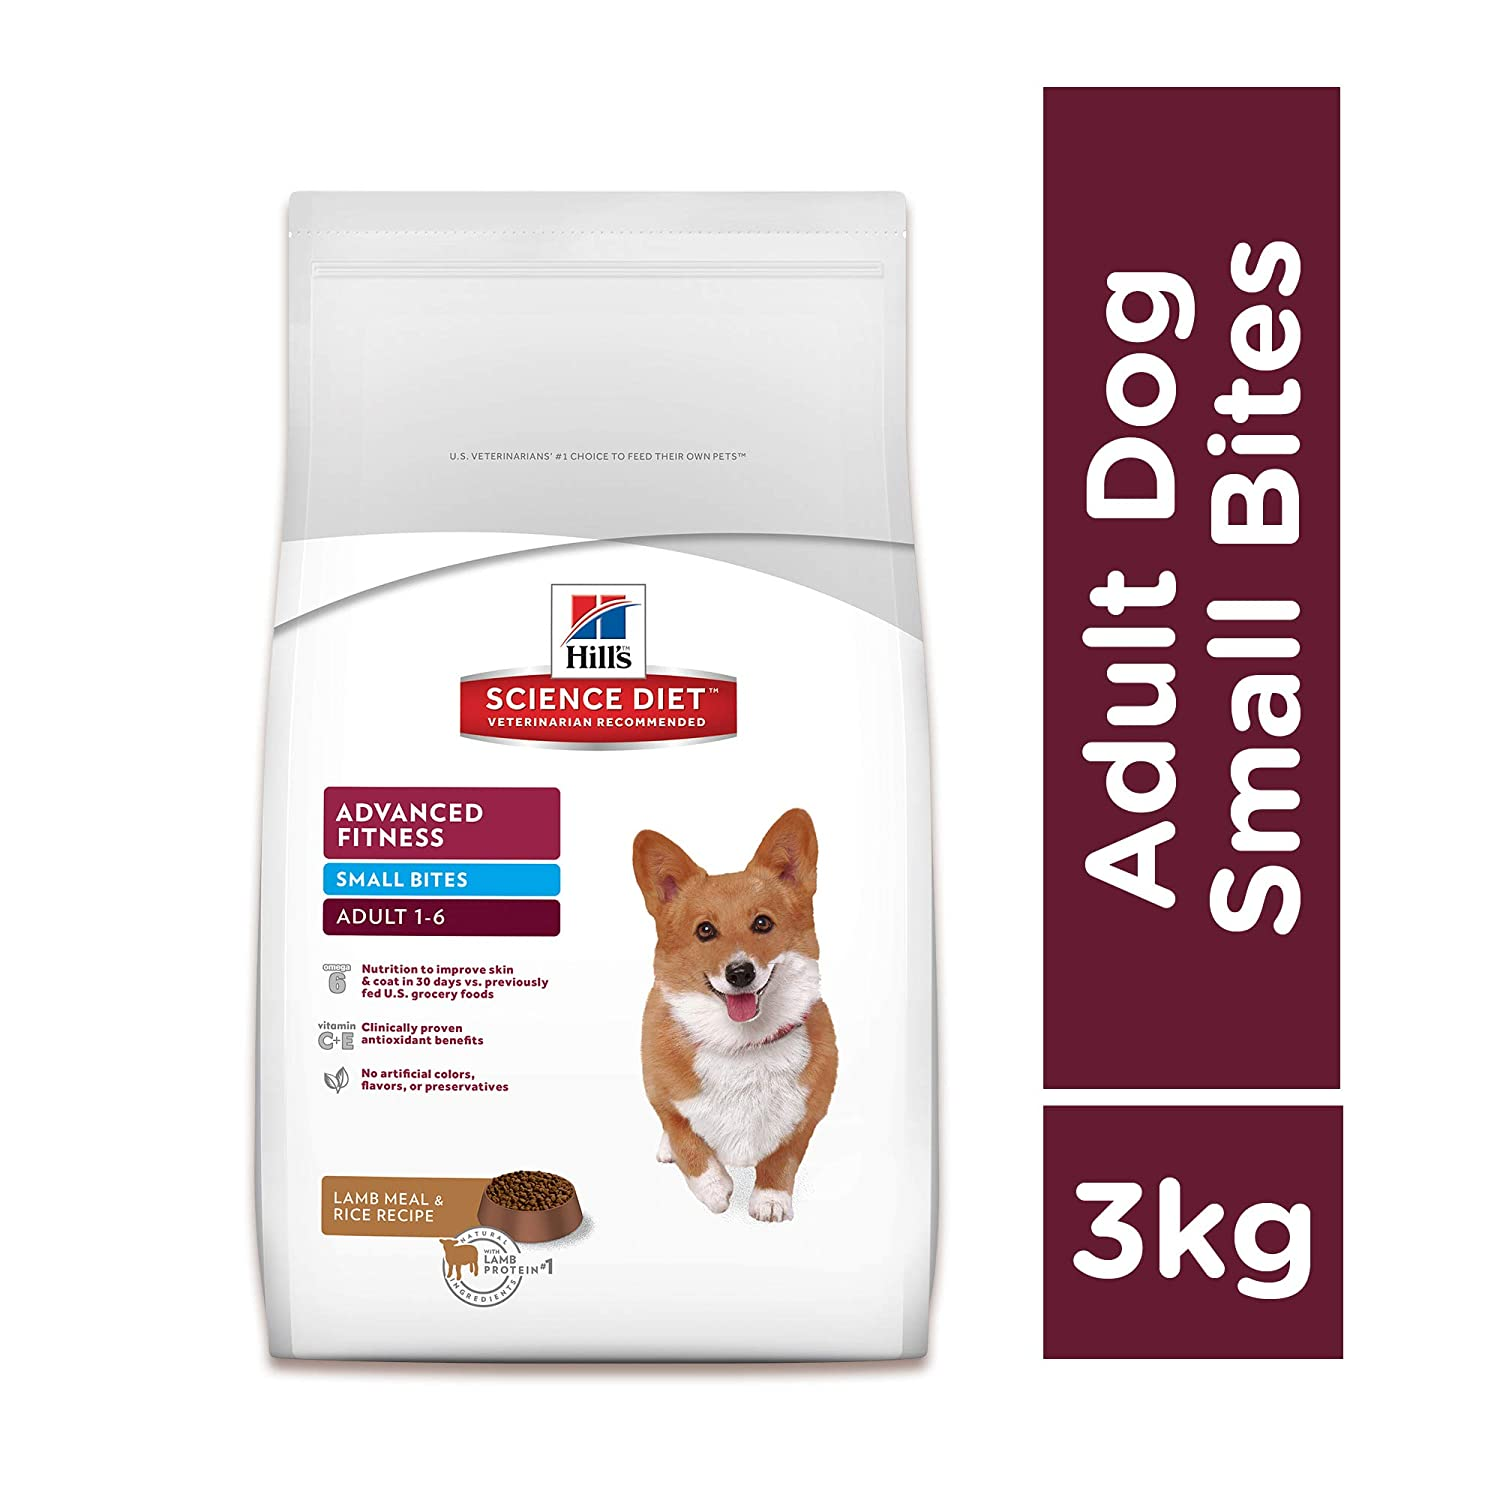 Hill's Science Diet Adult Small Bites Lamb & Rice Dry Dog Food - 3 Kg